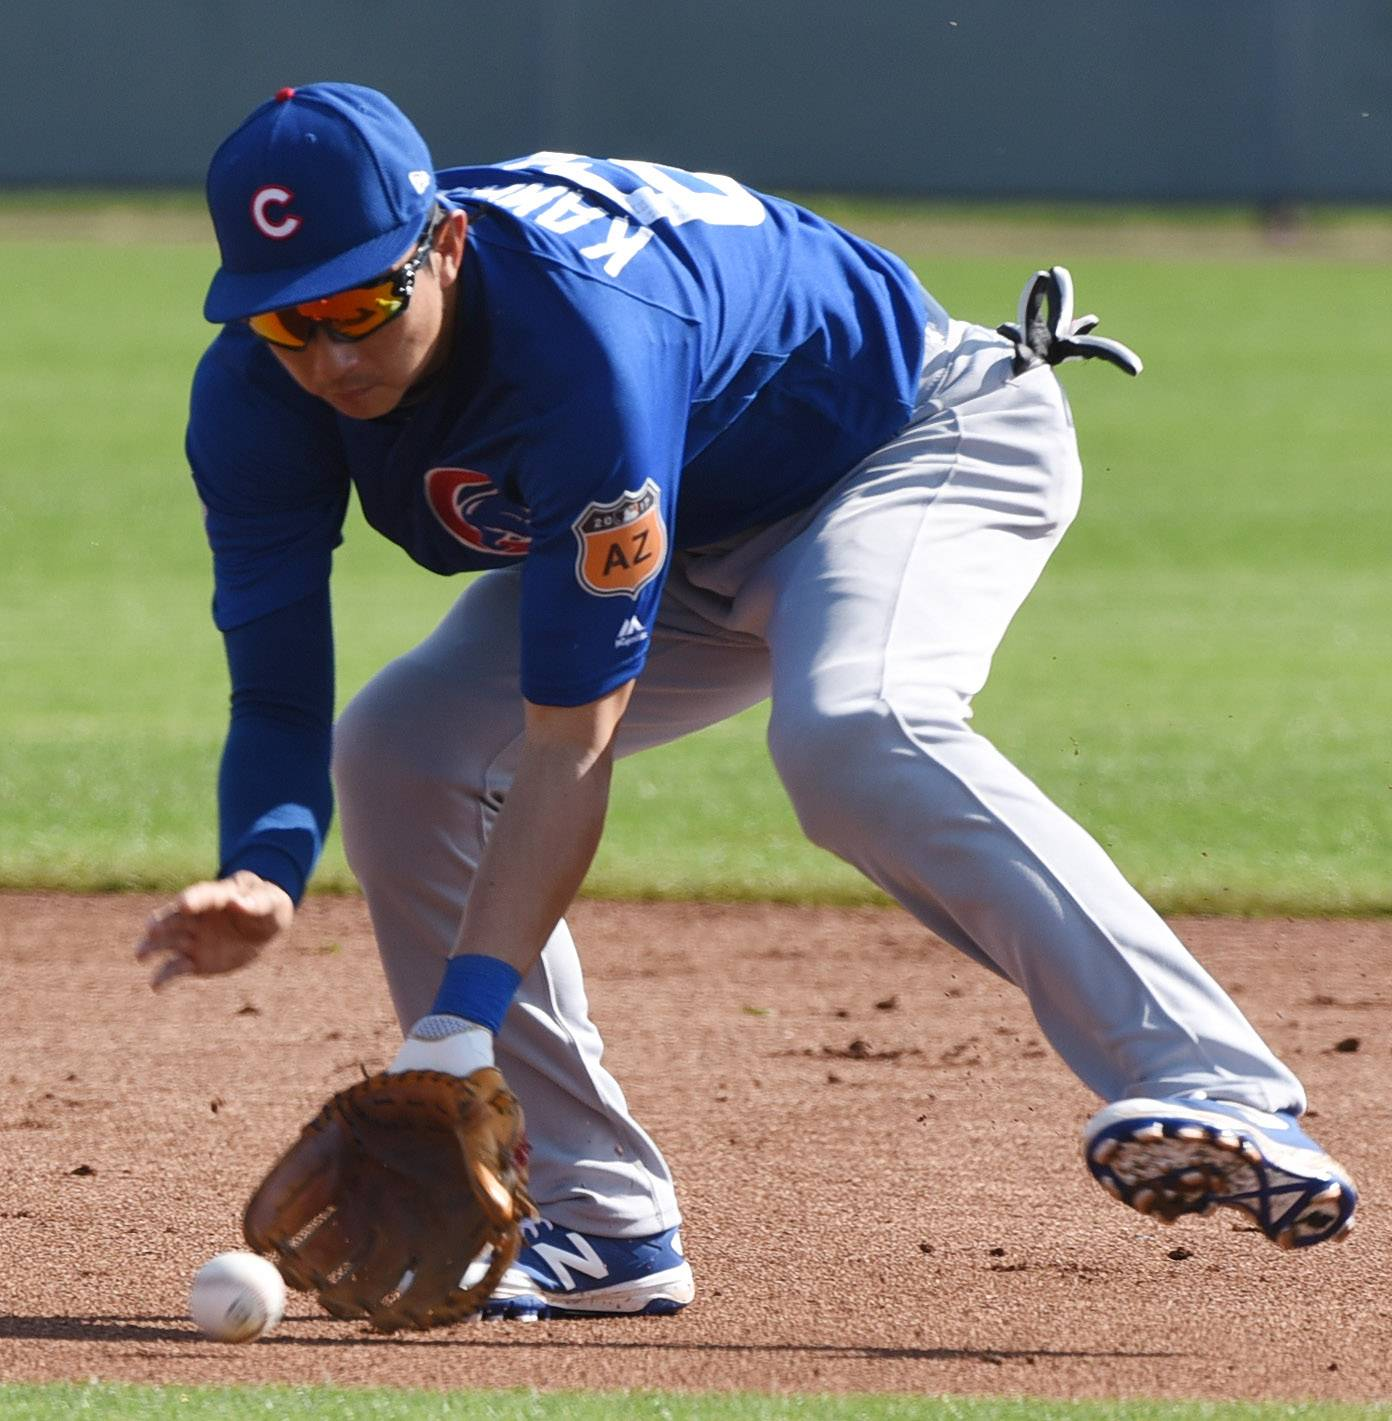 Cubs' nonroster invitees still chasing their baseball dreams